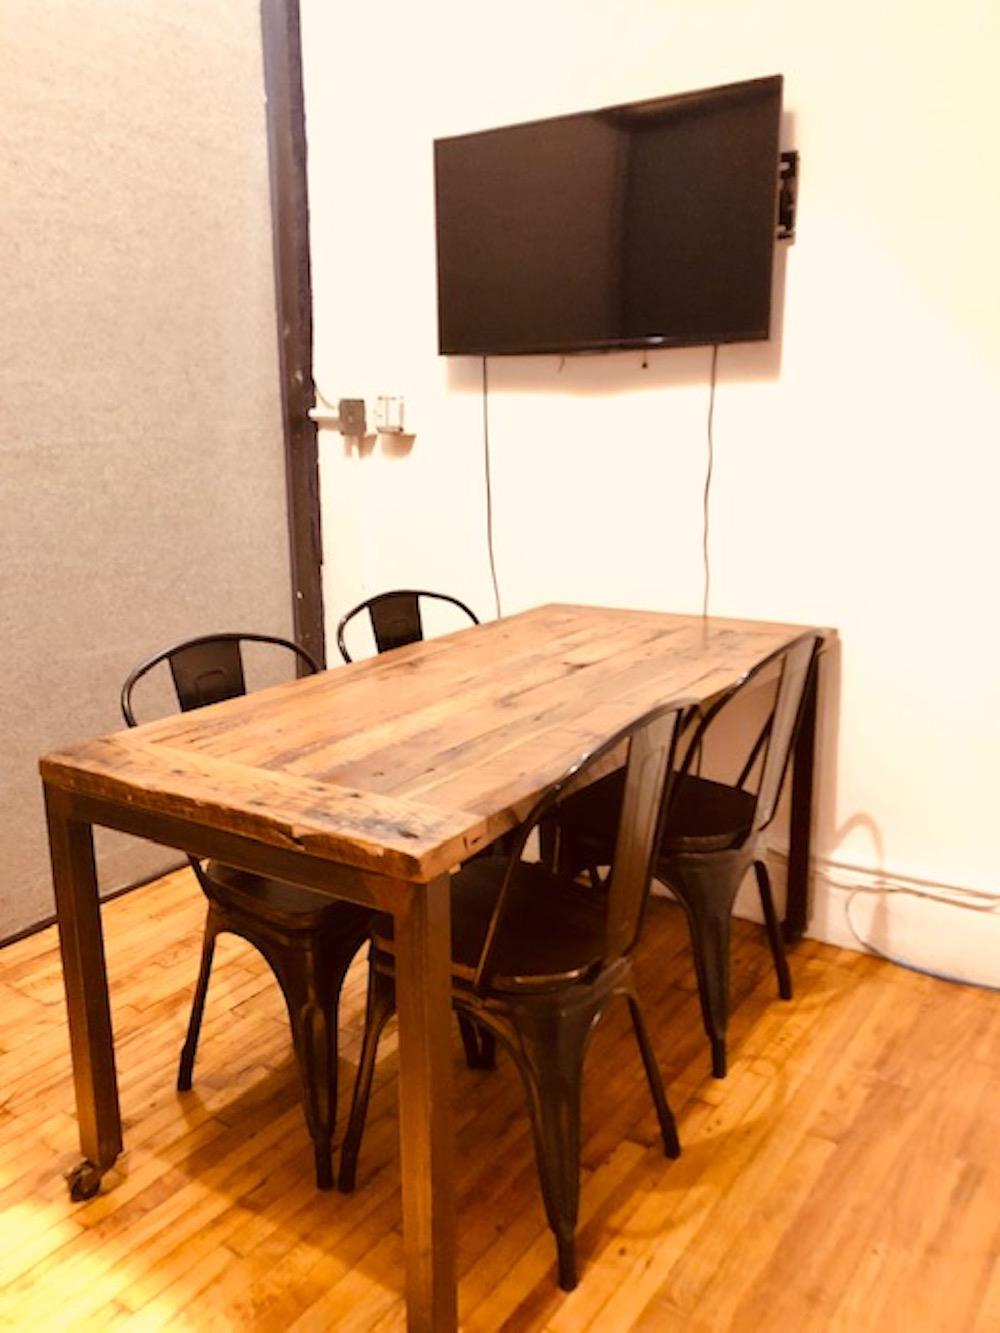 The Farm SoHo - Small Conference Room (4 Person)